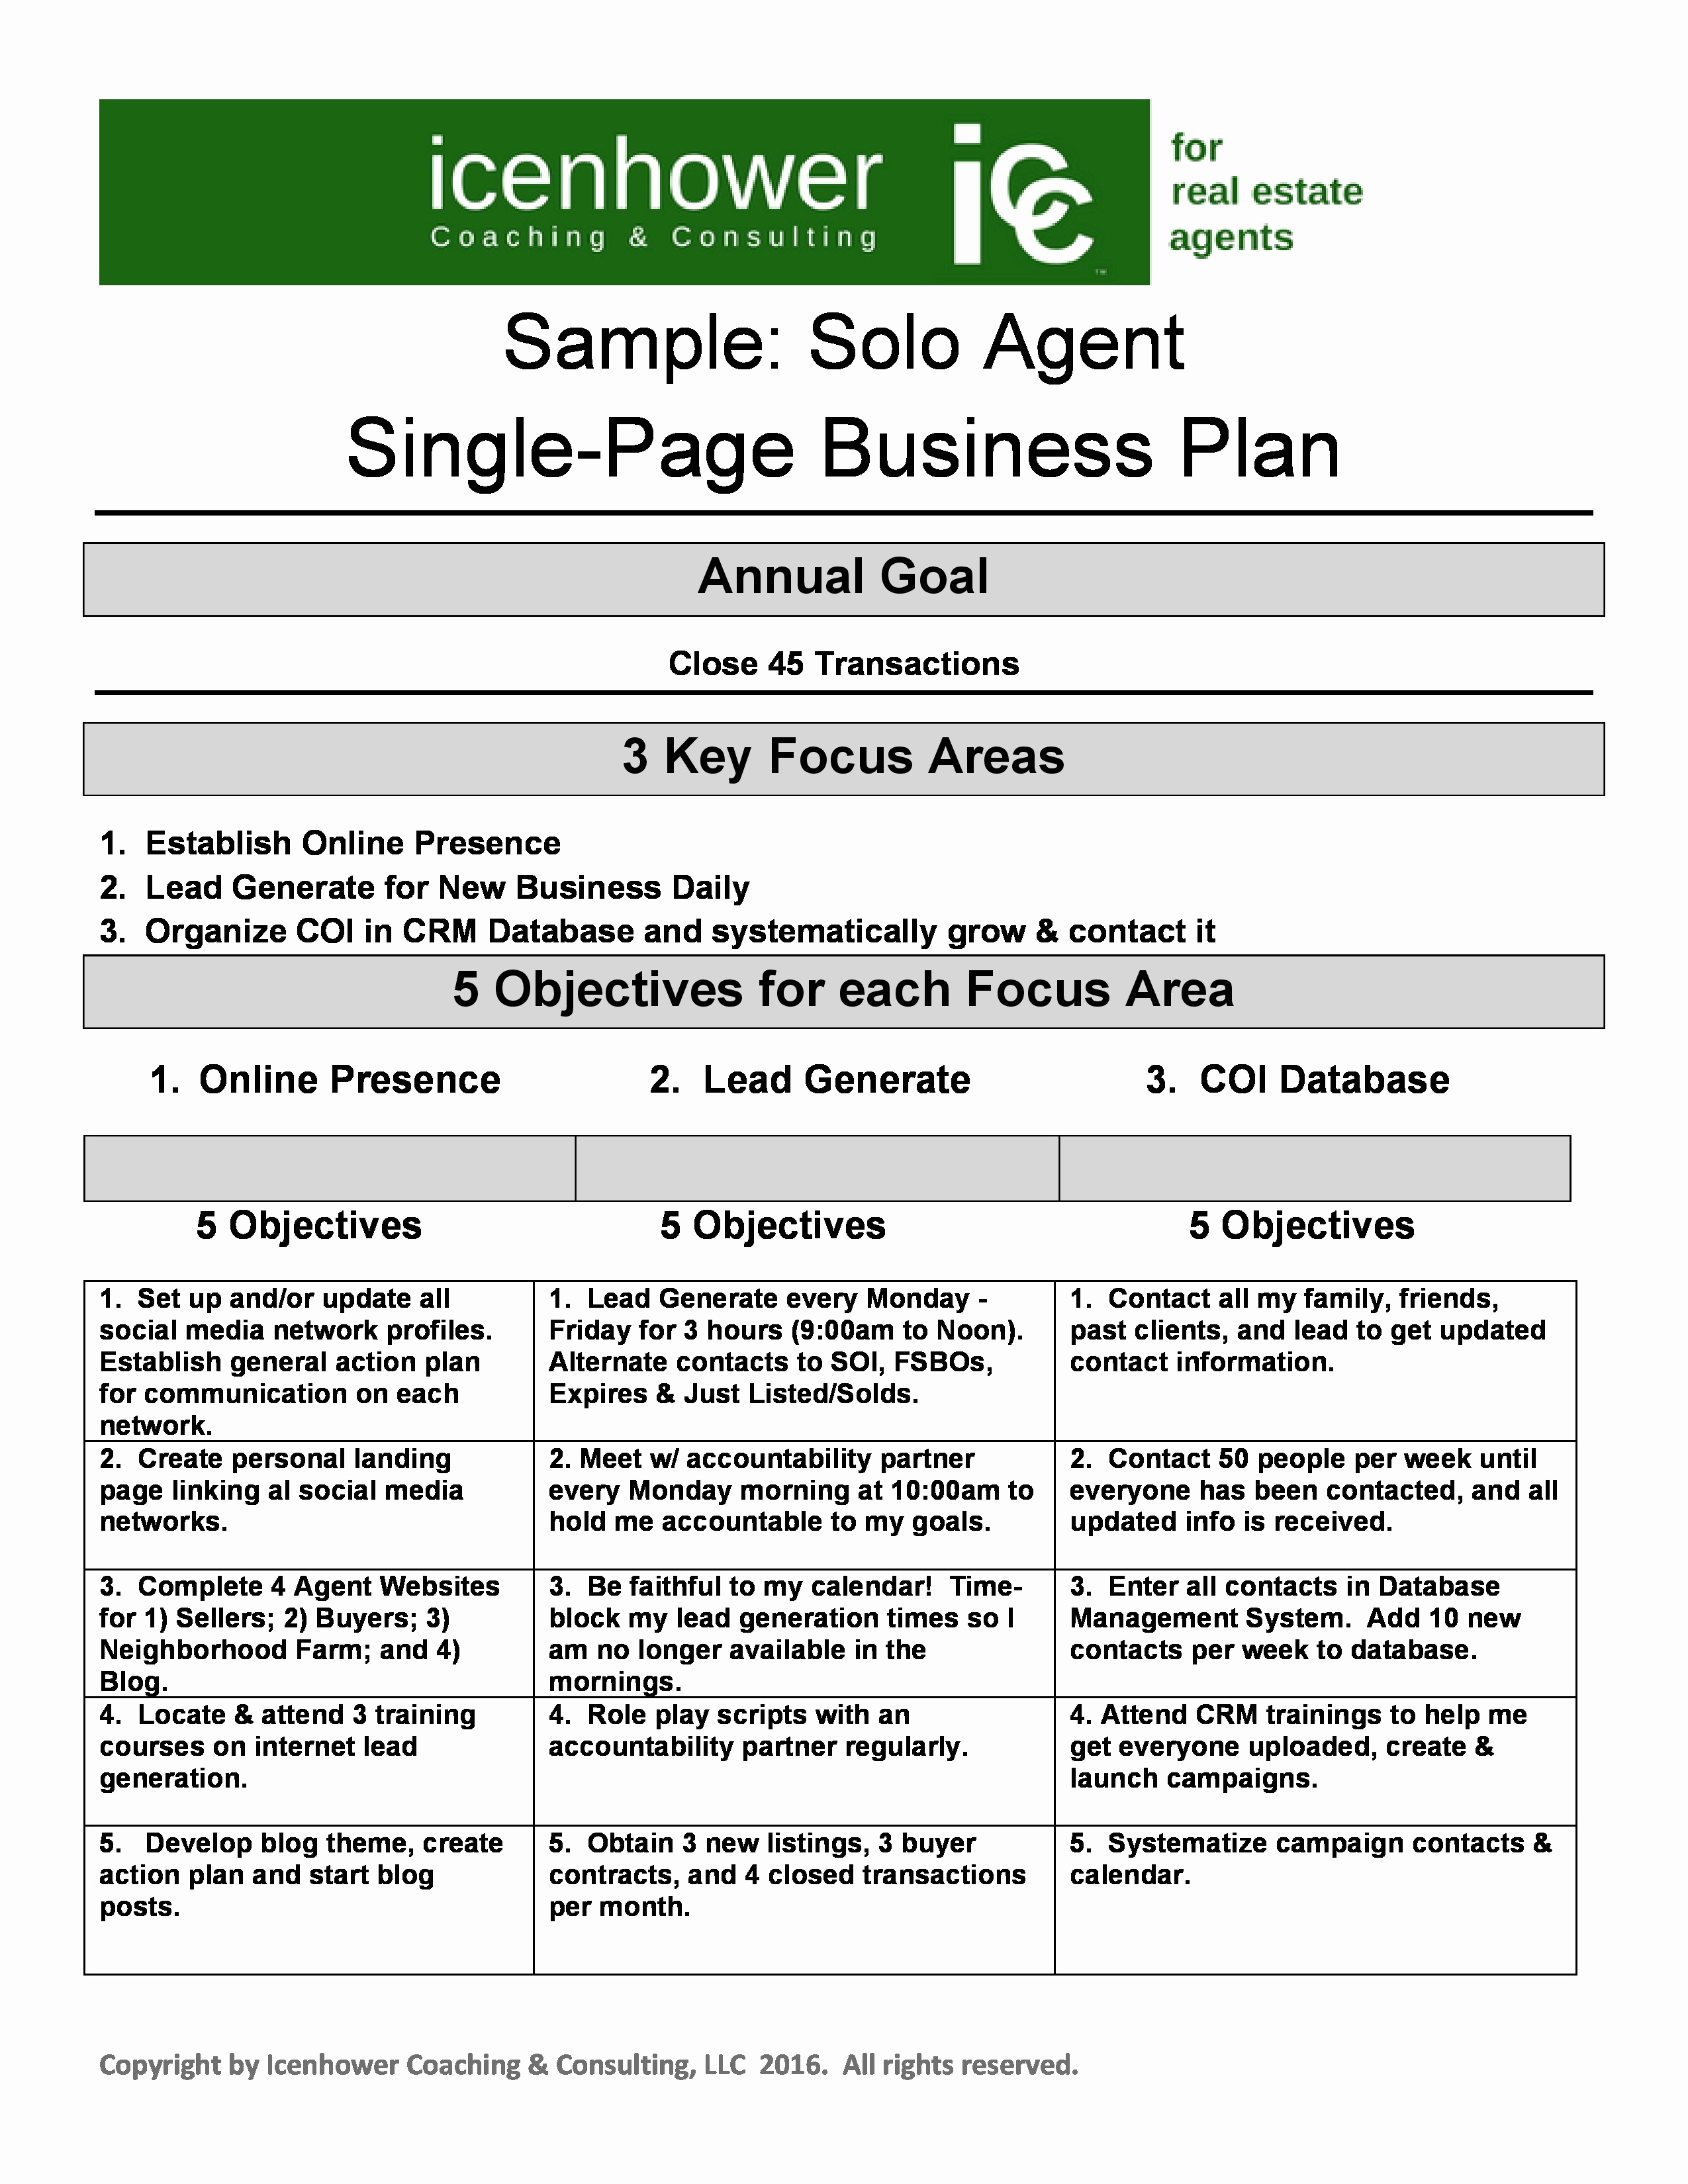 House Flipping Spreadsheet Xls With House Flipping Spreadsheet Xls – Spreadsheet Collections